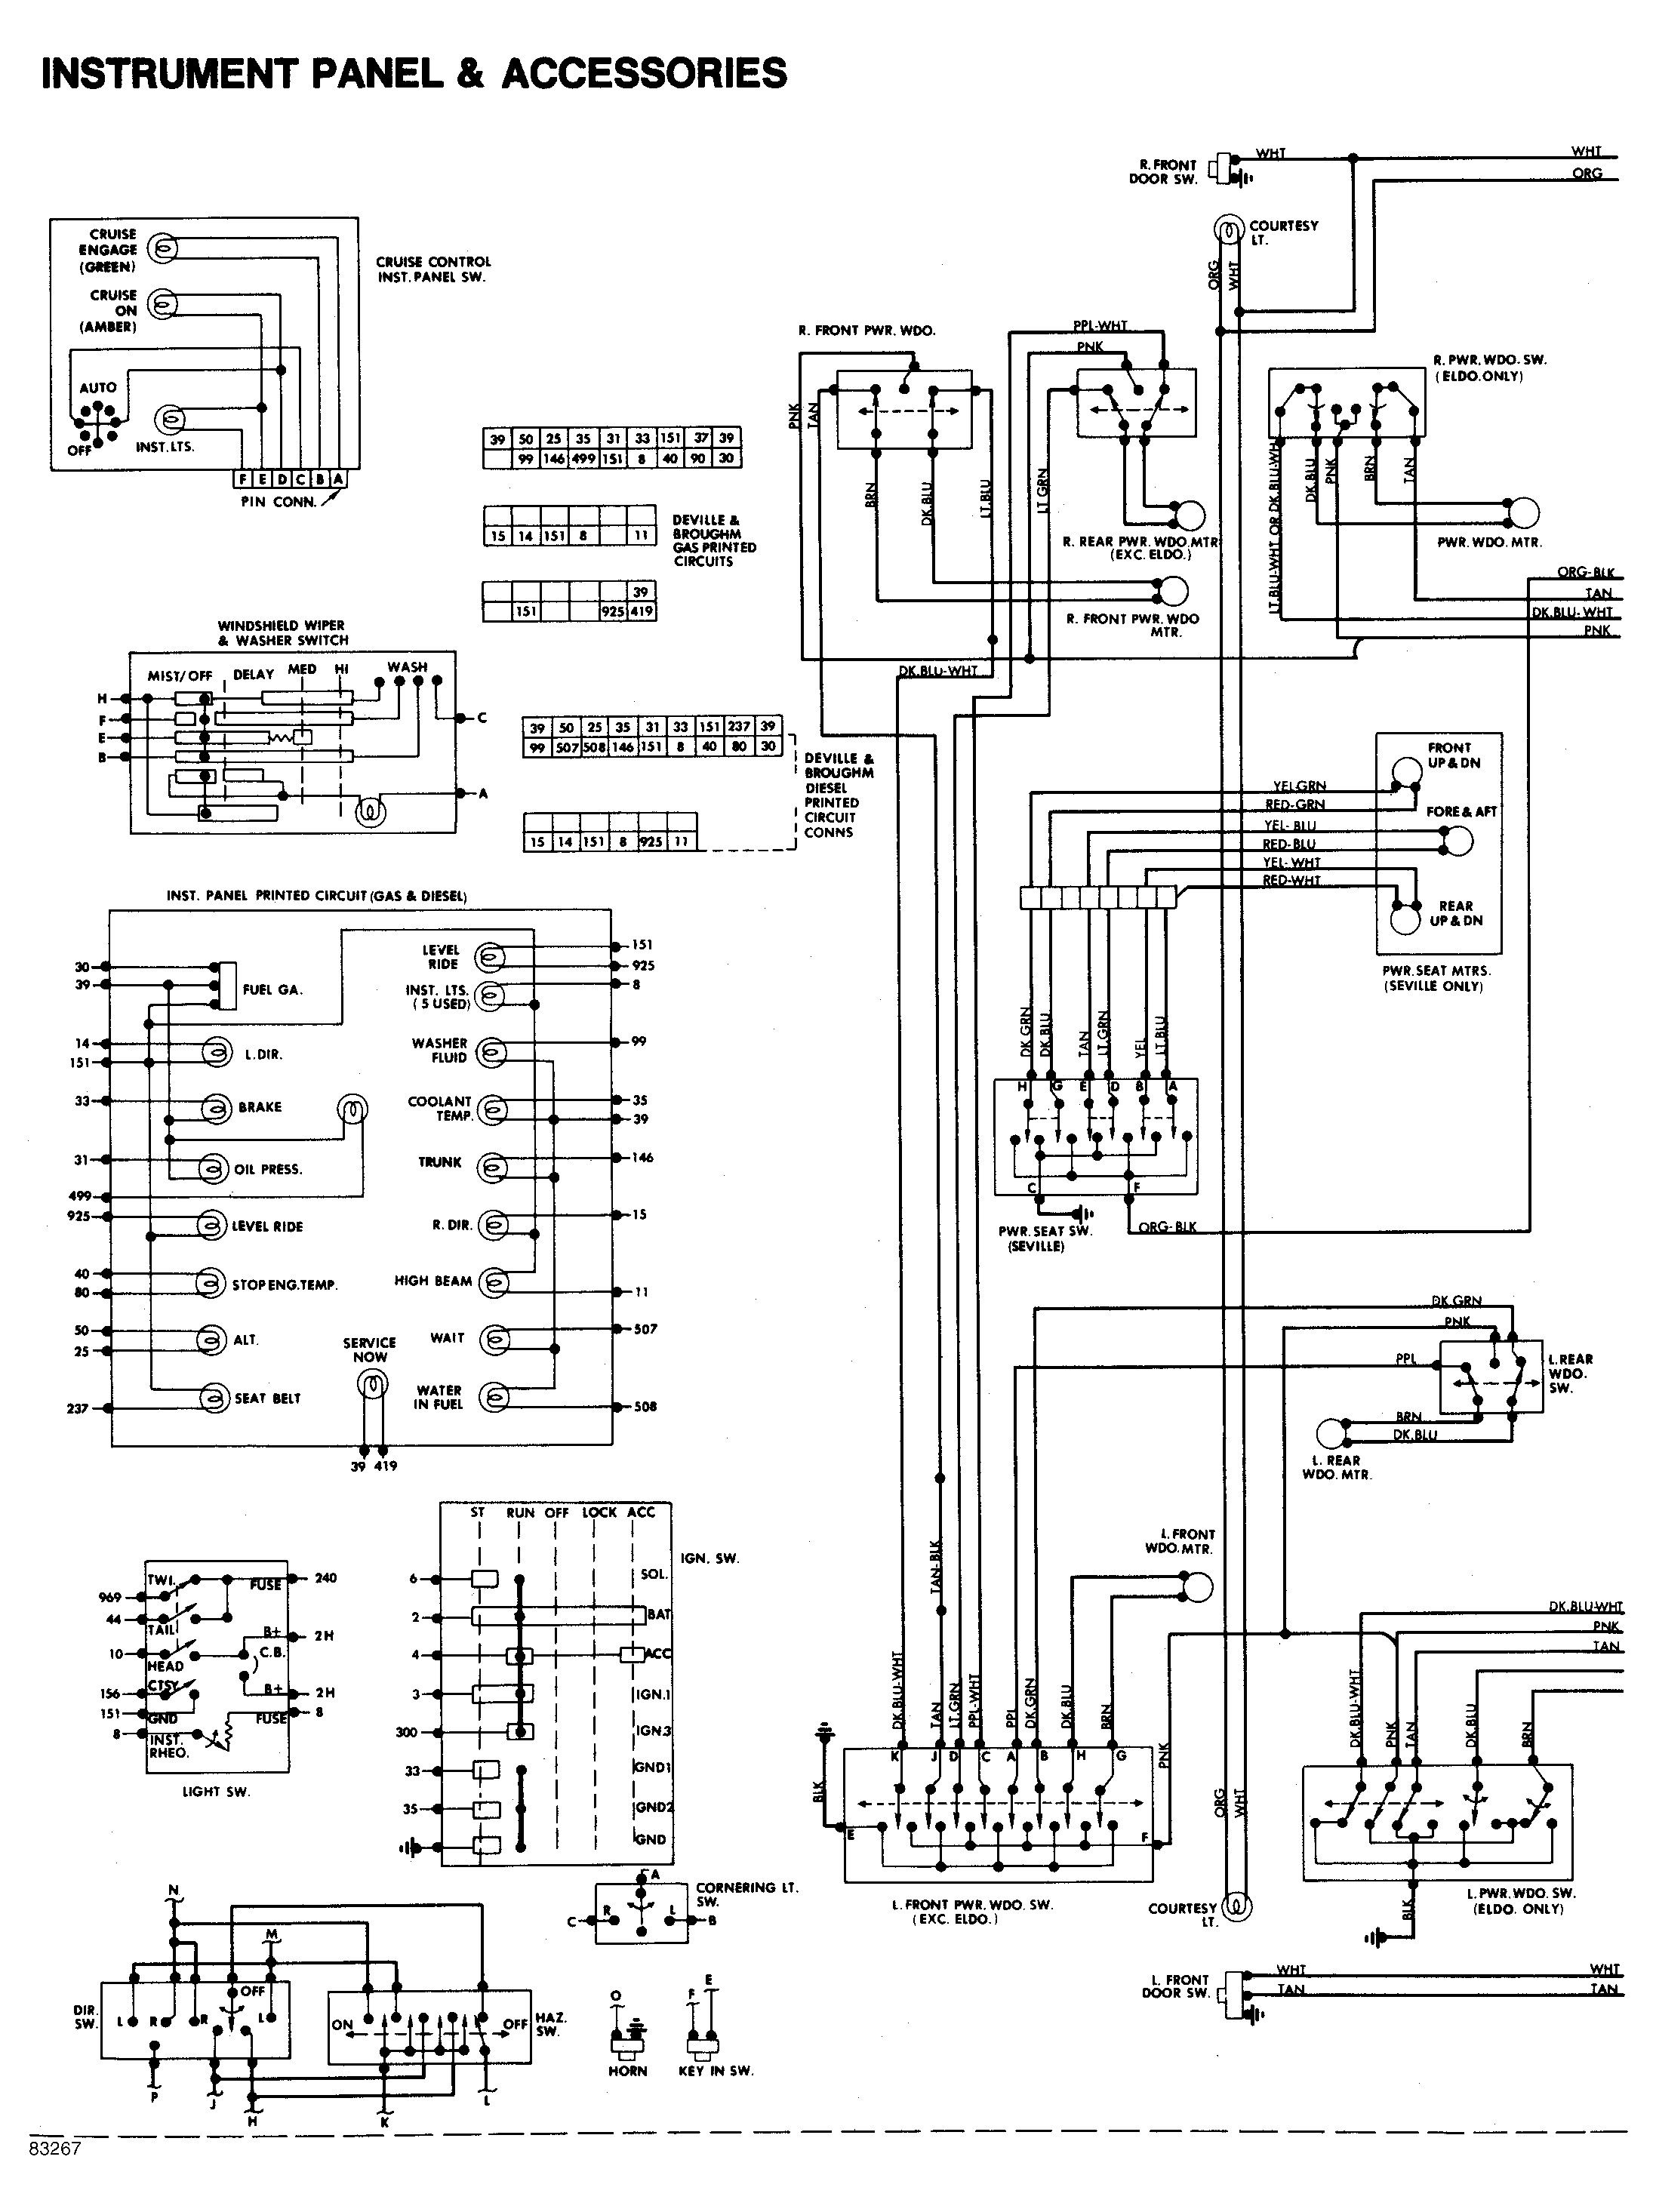 Wiring Diagram 1998 Honda Cr250 Excellent Electrical Library Rh 91 Boptions1 De 1989 1995